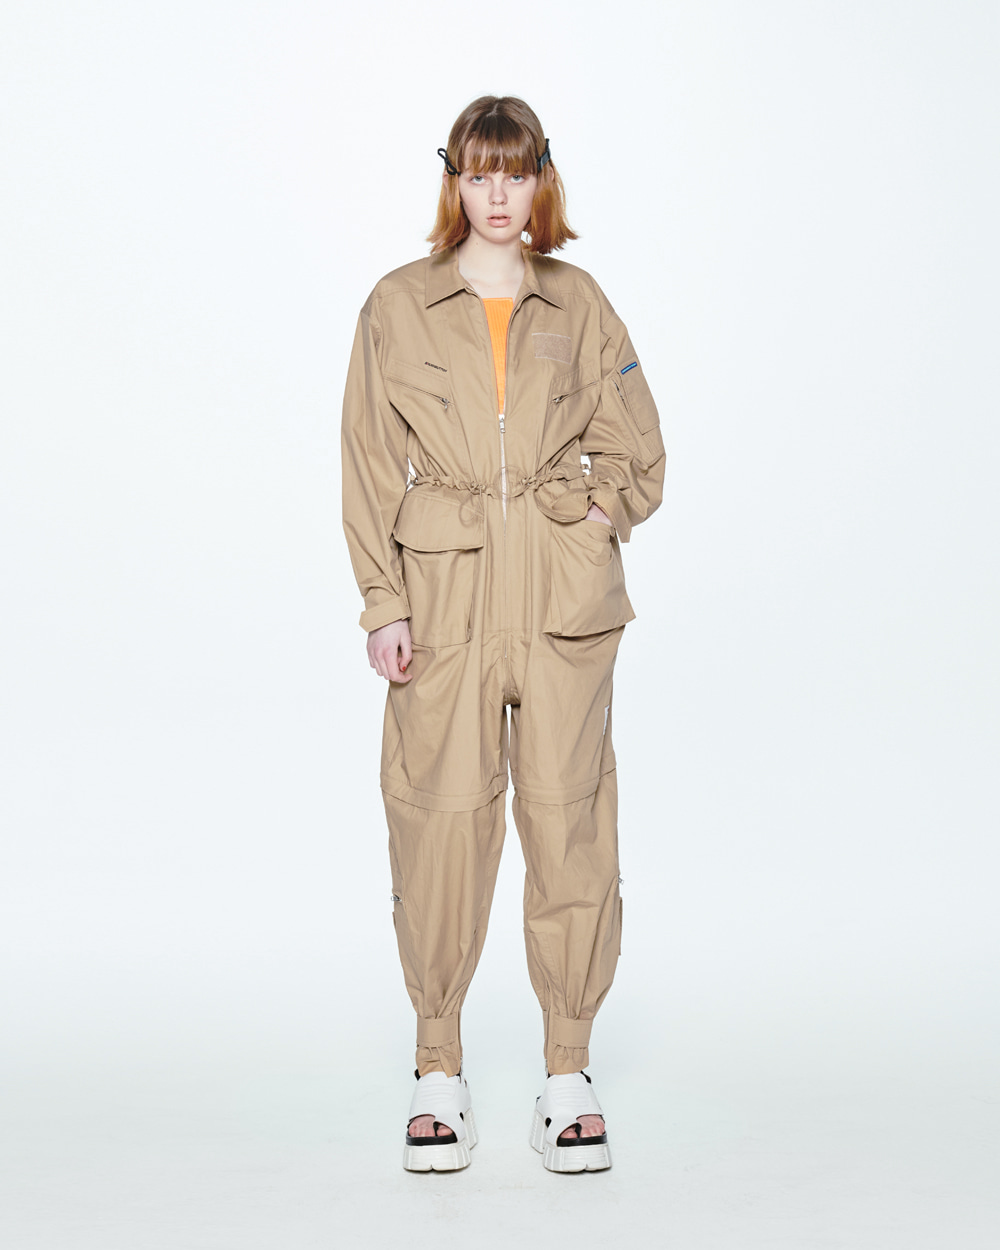 SS20 OVERBLOWN JUMPSUIT